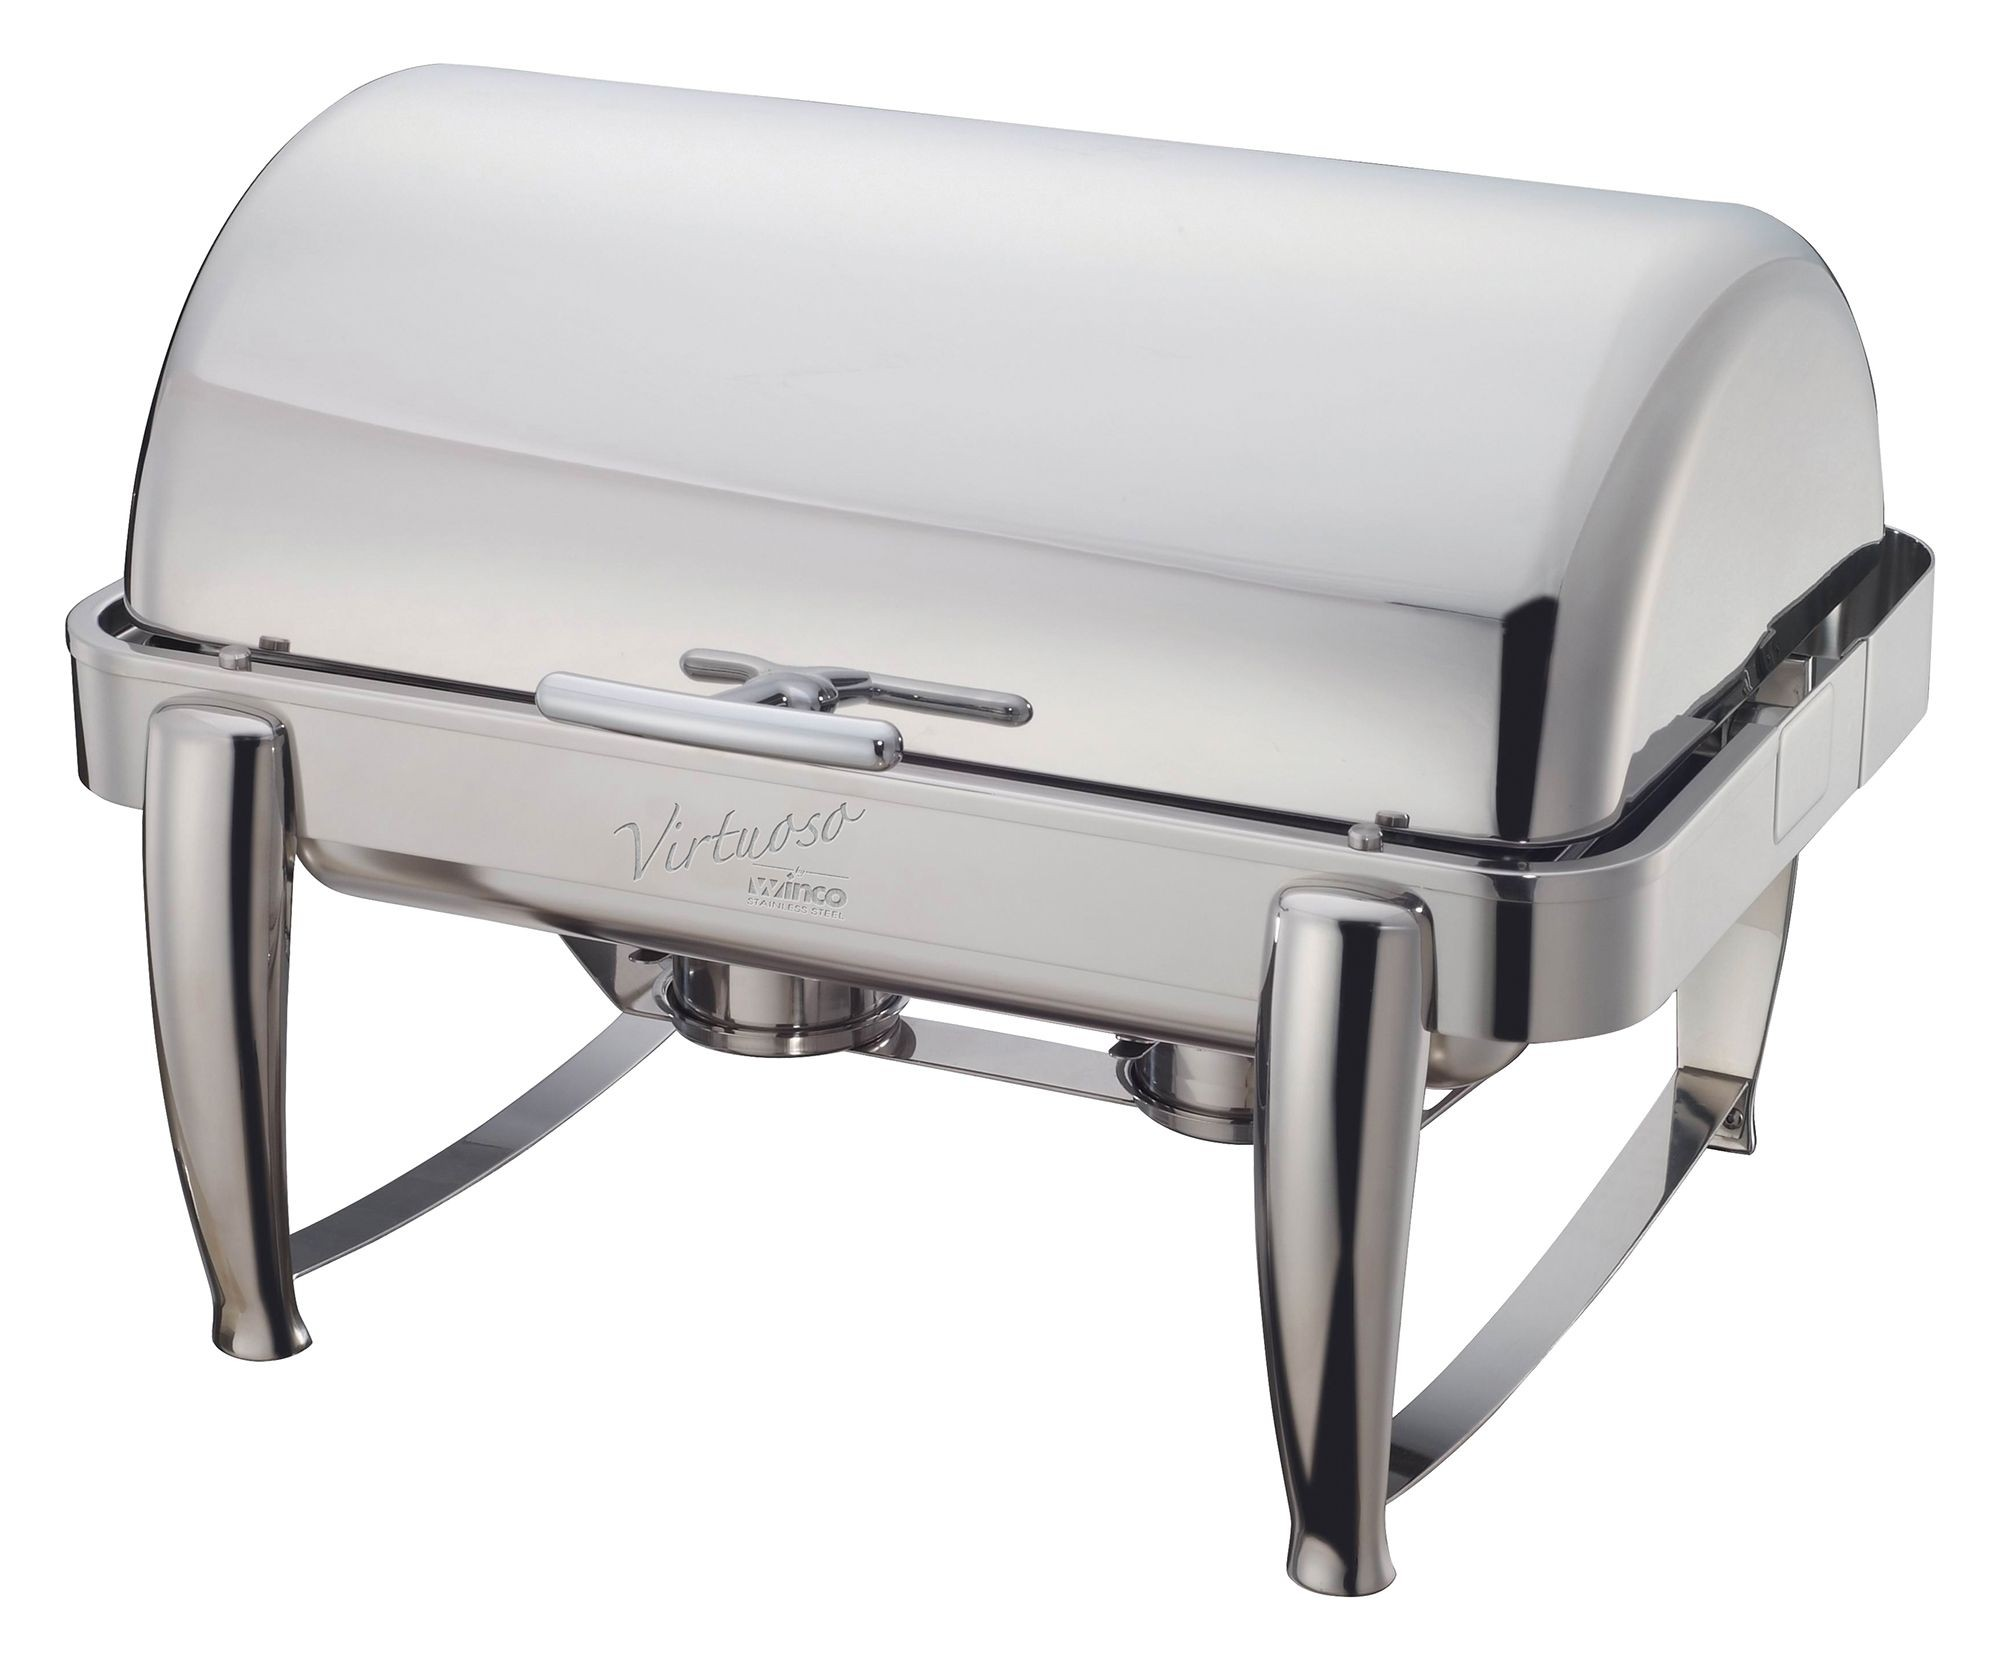 Winco 101B Virtuoso Full Size Stainless Steel Roll-Top Chafer 8 Qt.